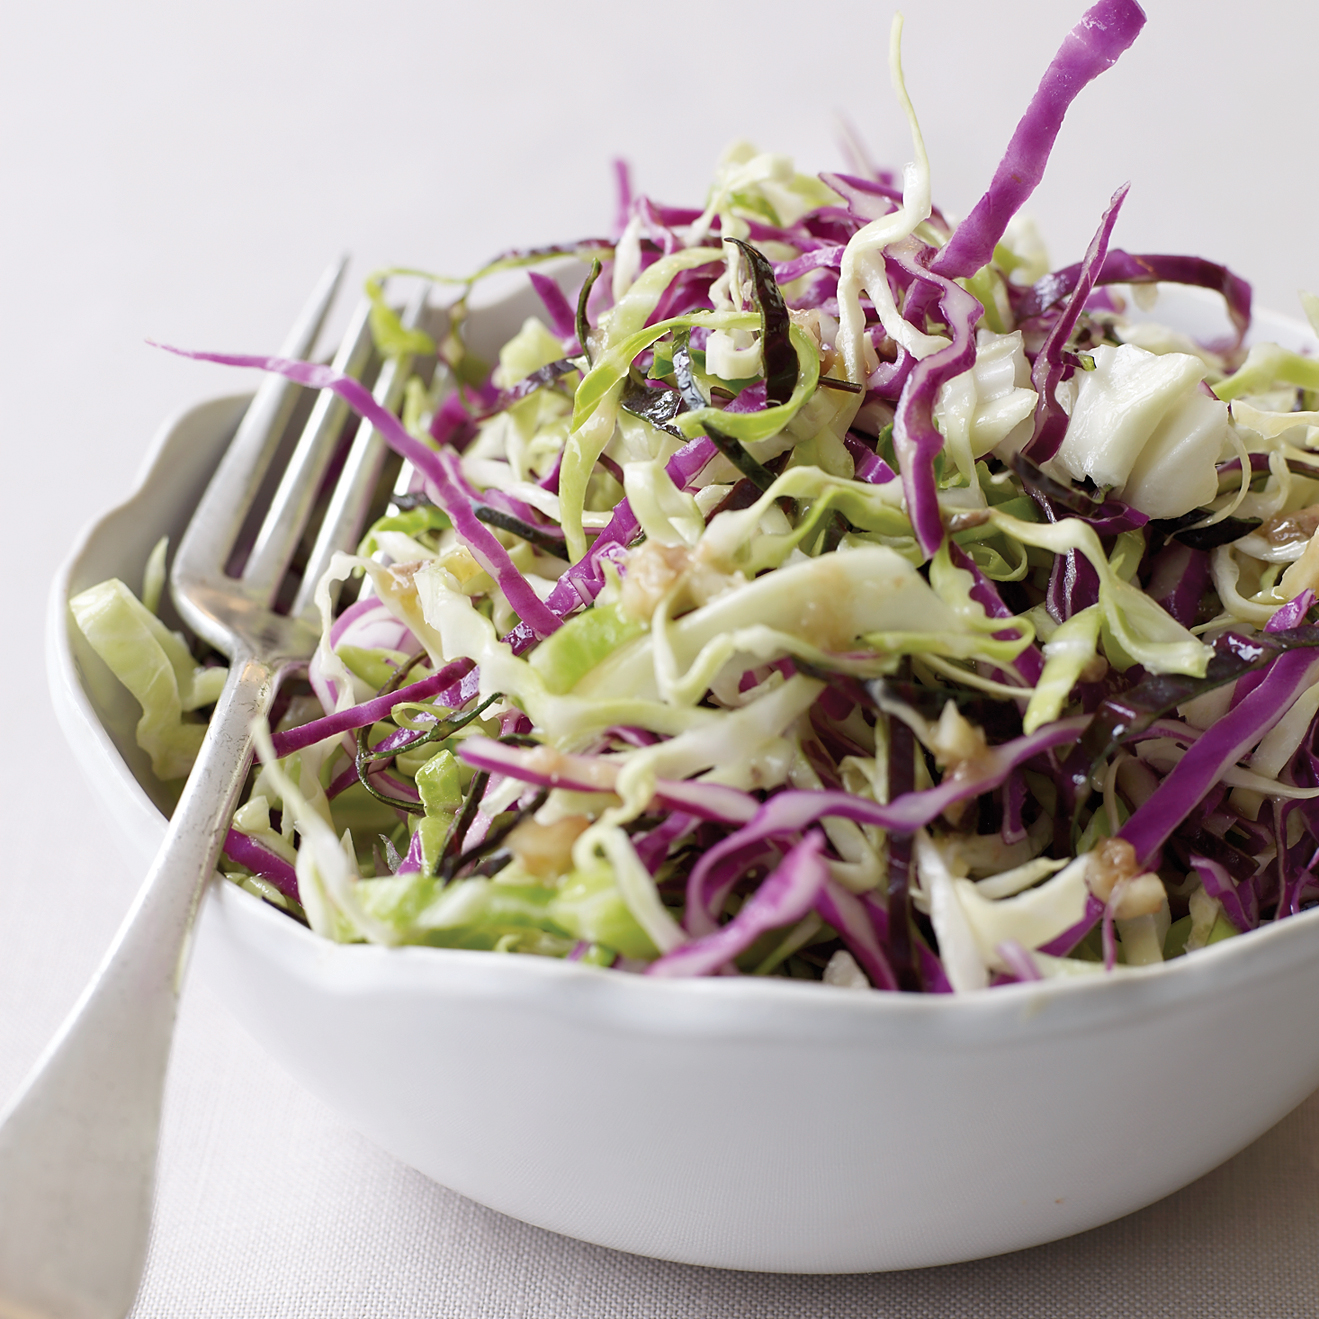 Cabbage salad with vinegar: recipe 76